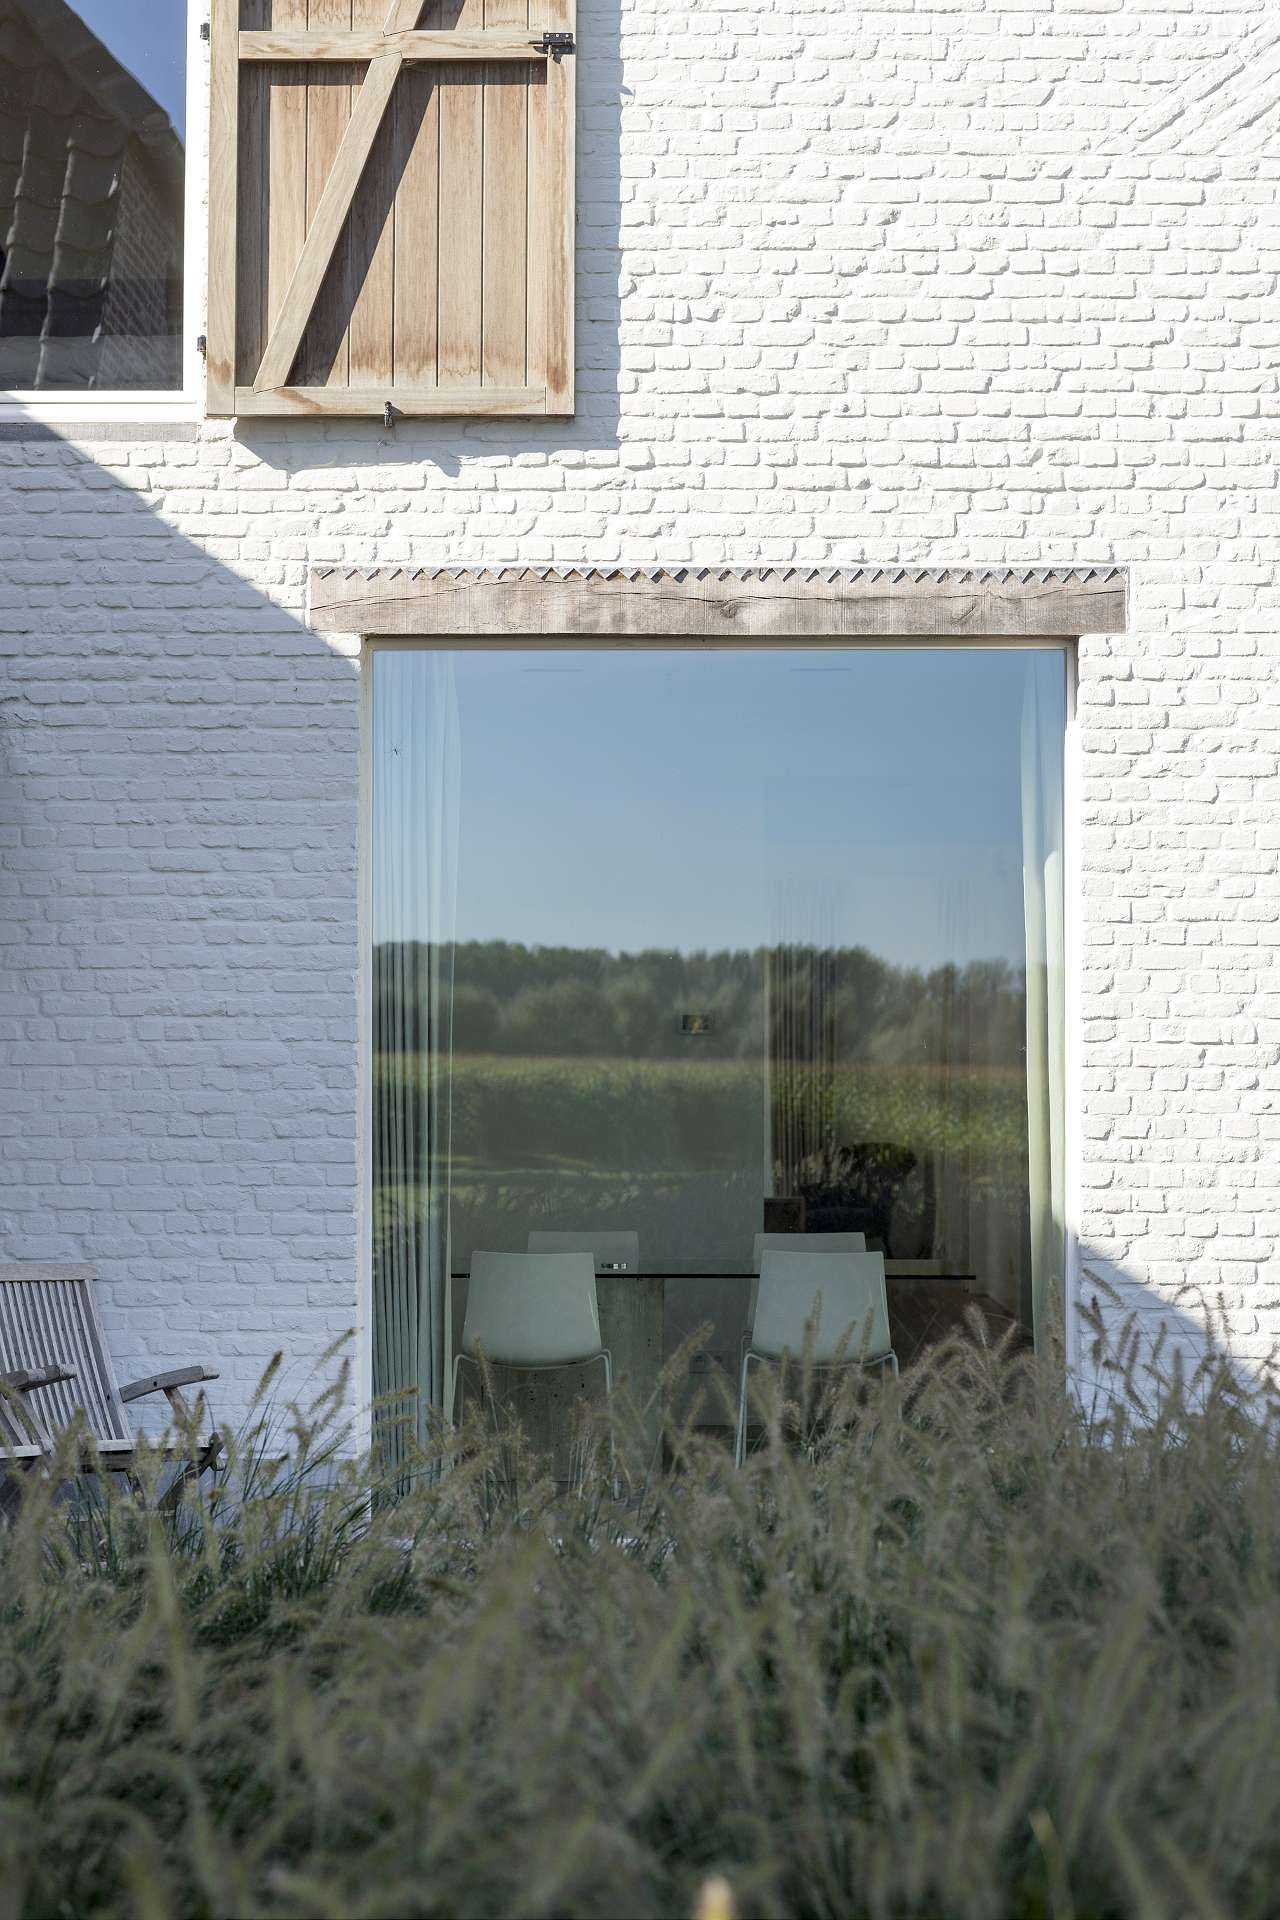 Window design for house exterior  pouleyn  home  pinterest  architecture ramen and house